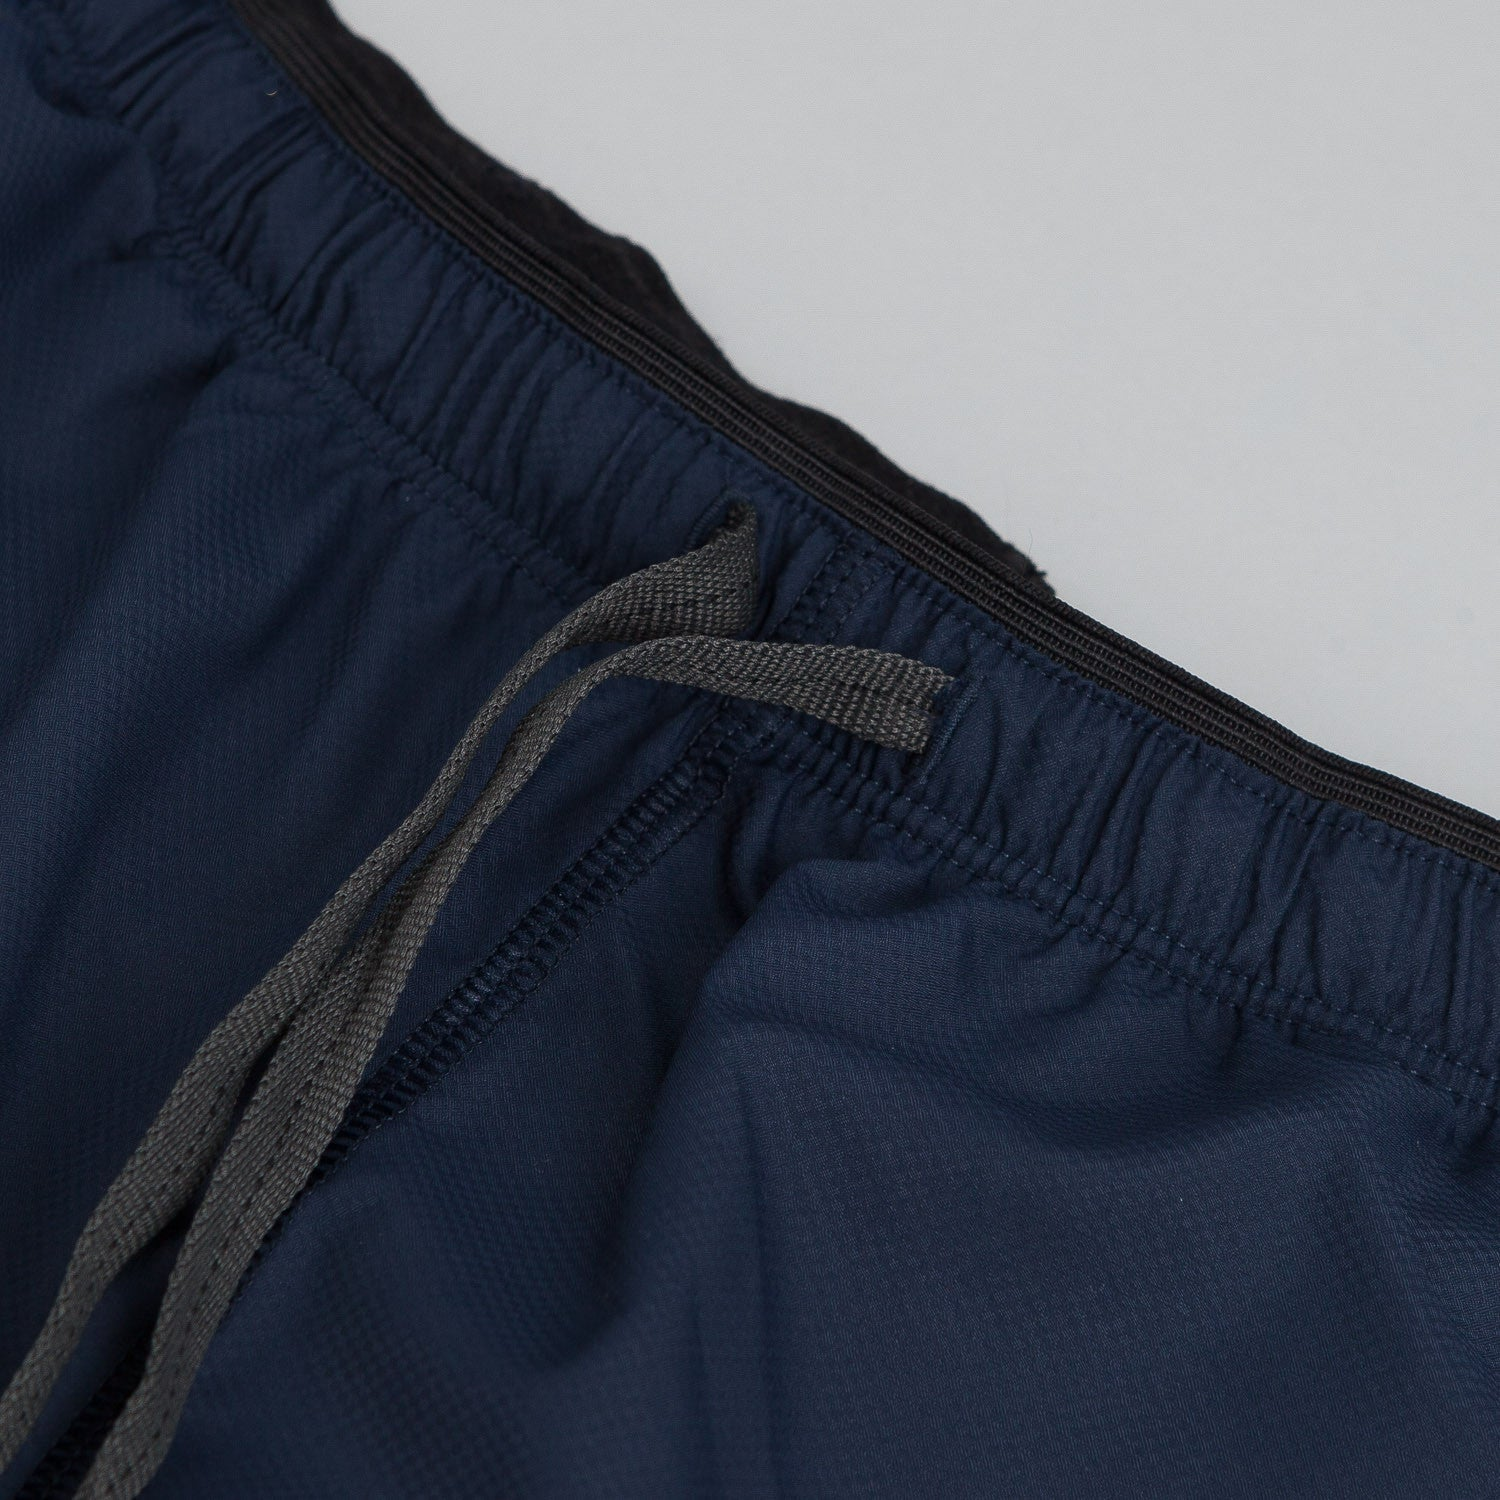 "Patagonia Strider Pro Shorts 5"" - Navy Blue"